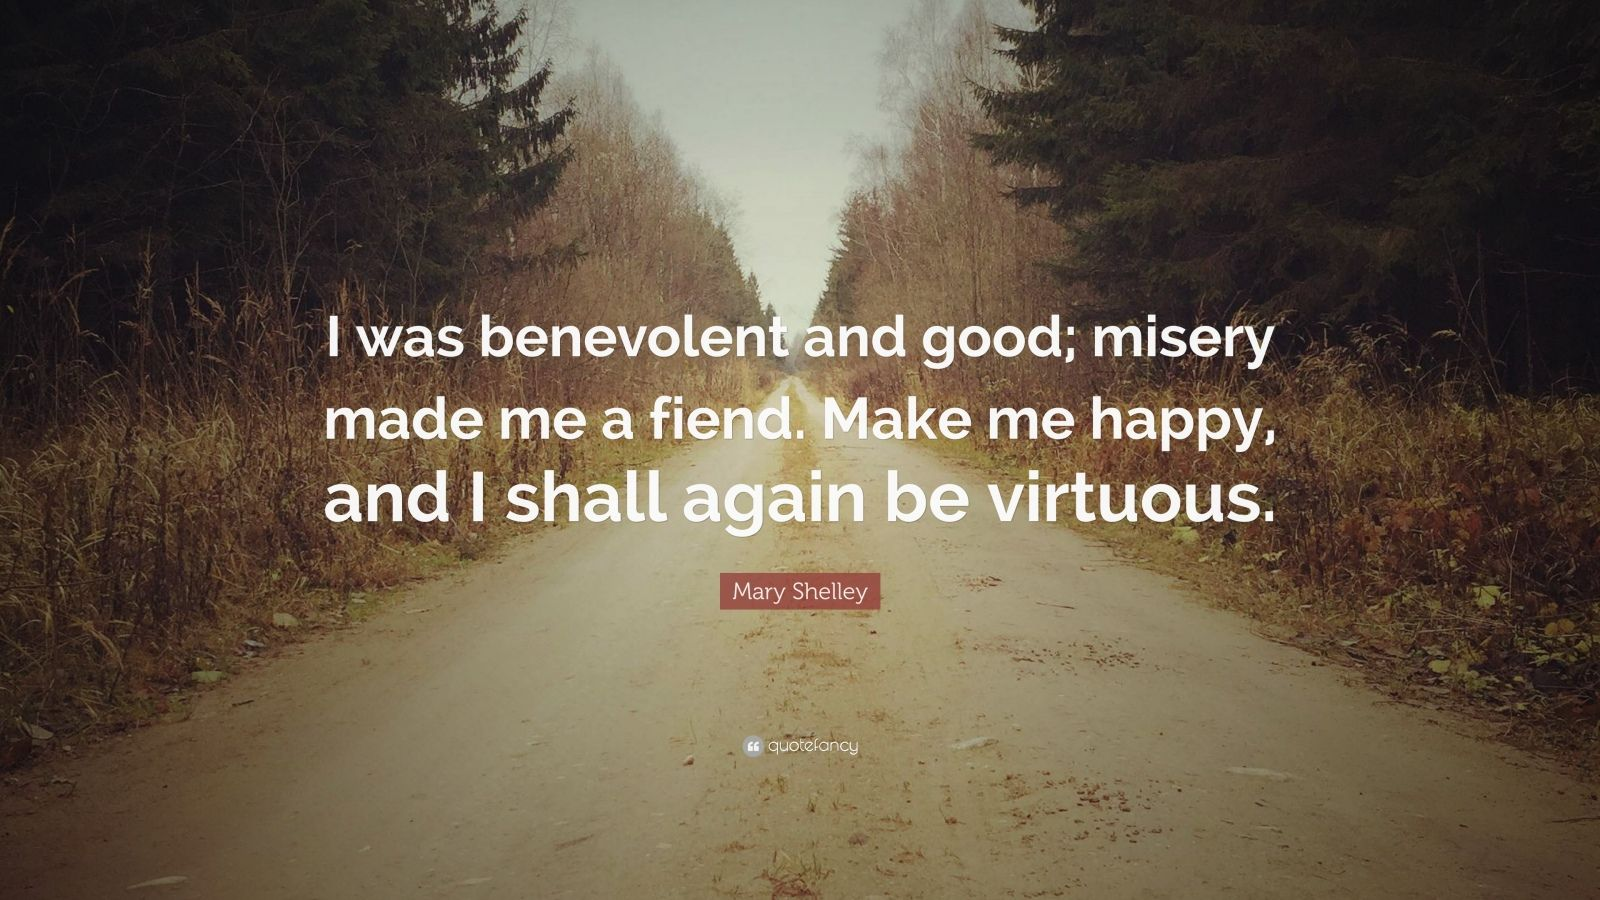 """Mary Shelley Quote: """"I was benevolent and good; misery made me a fiend. Make me happy, and I shall again be virtuous."""""""